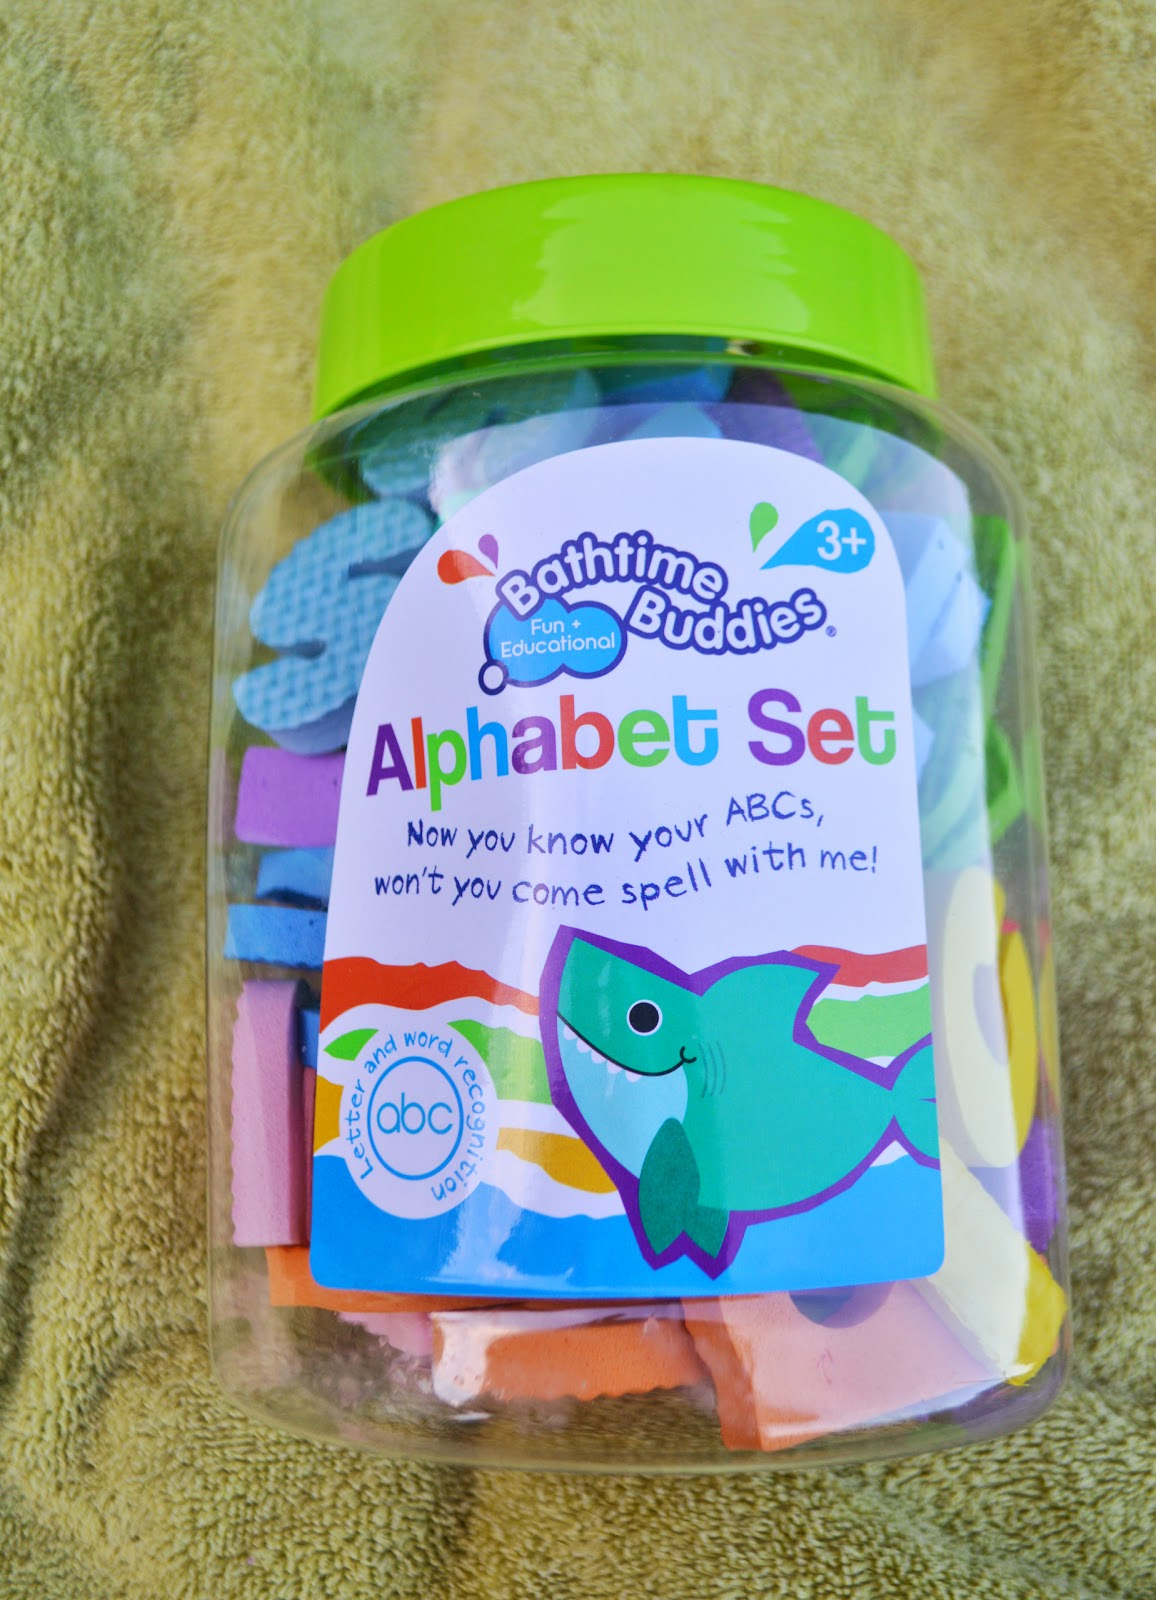 Bathtime Buddies Fun Bath Toys Review and Alphabet Set Giveaway ...